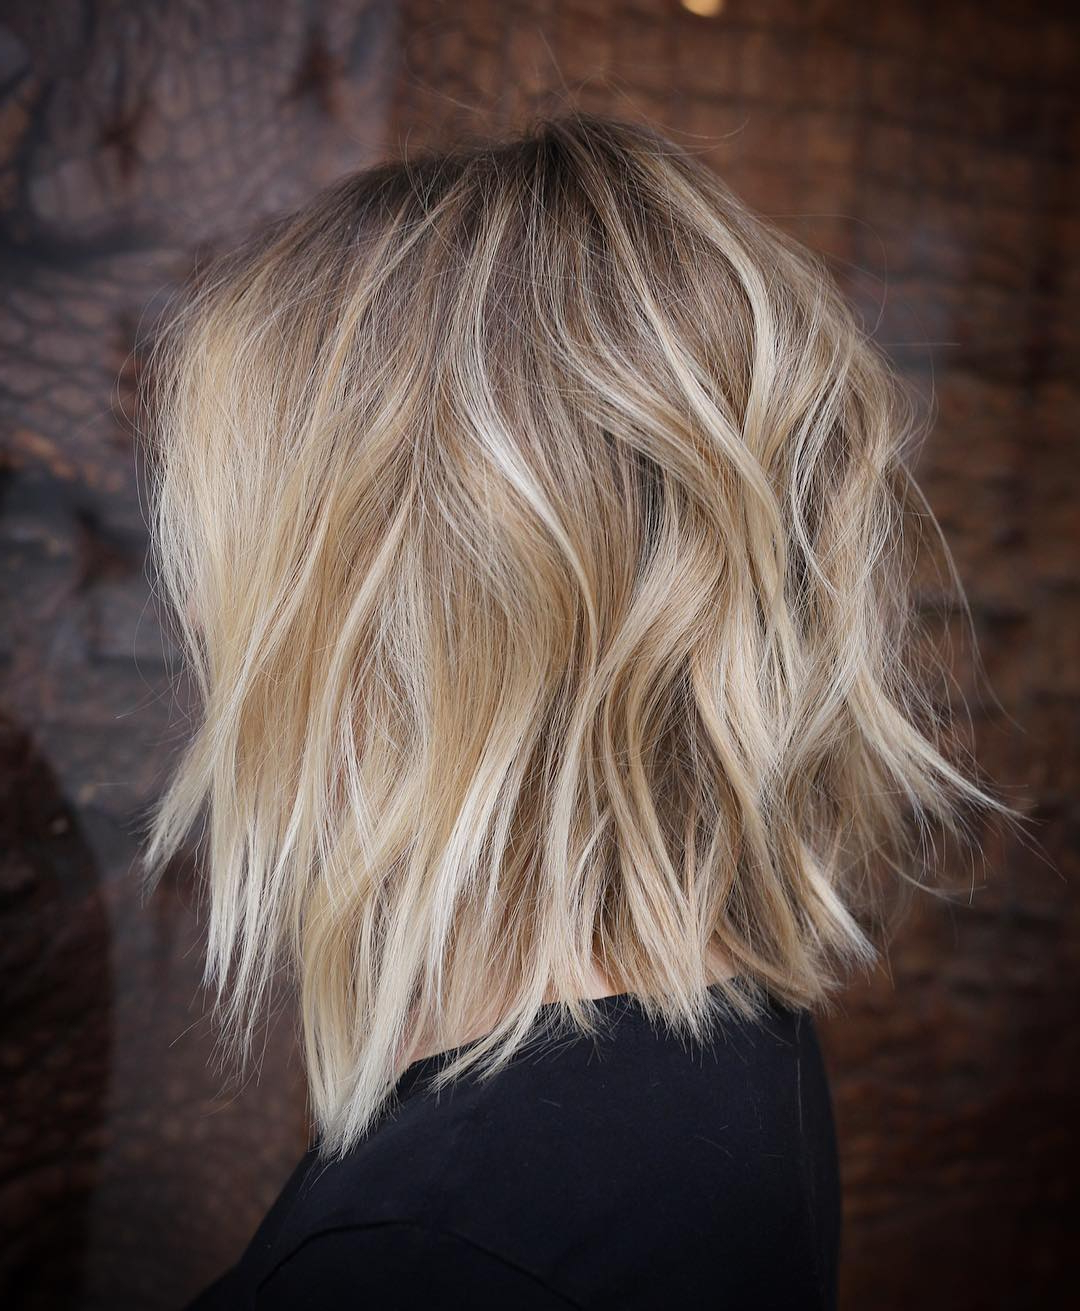 10 Stylish Lob Hairstyle Ideas, Best Shoulder Length Hair For Women 2019 Inside Well Known Side Parted Shaggy Lob Hairstyles (Gallery 3 of 20)